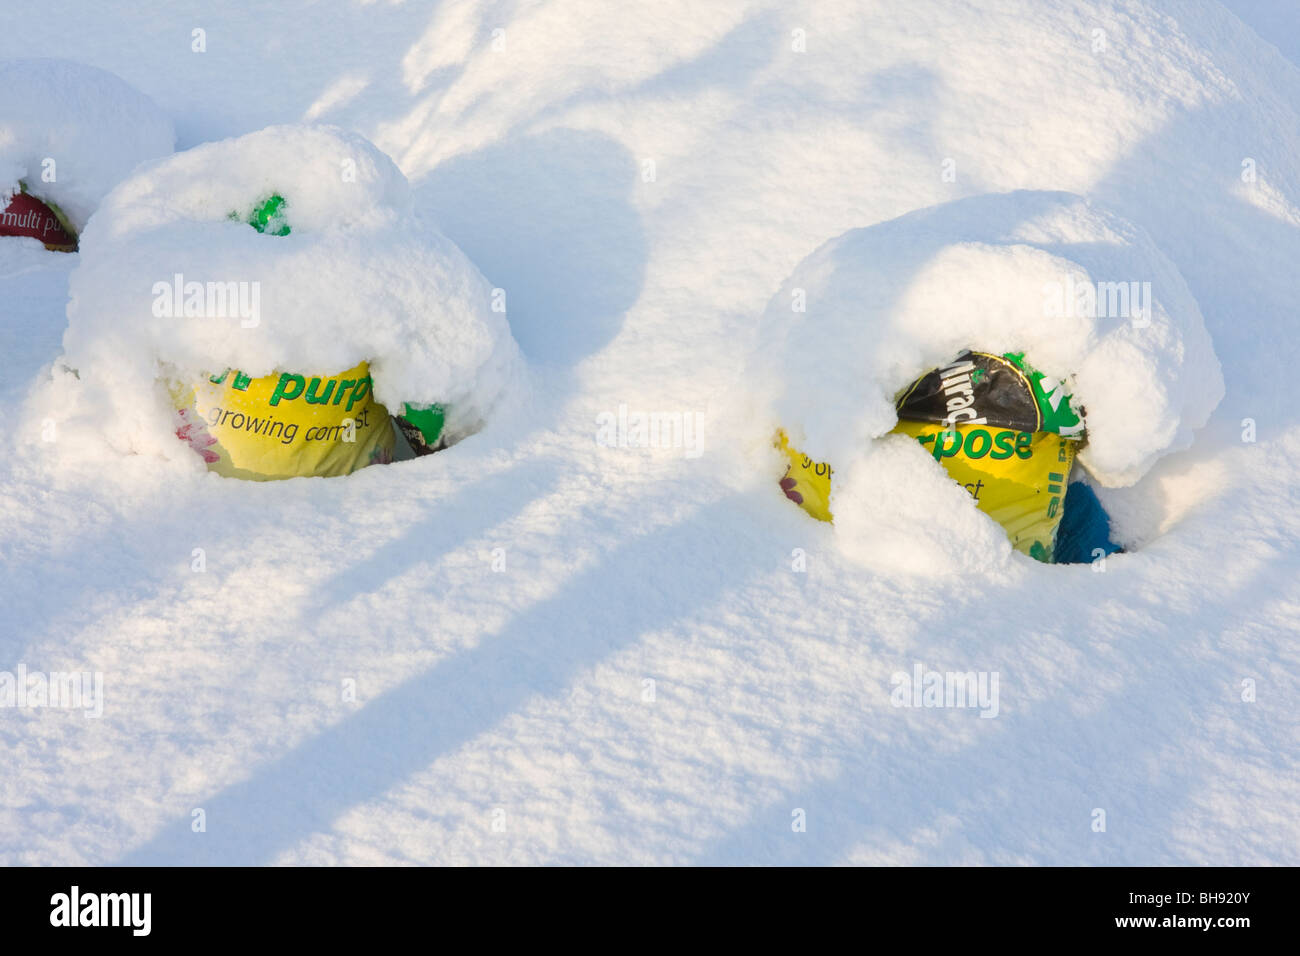 Compost sacks partially buried by snow - Stock Image